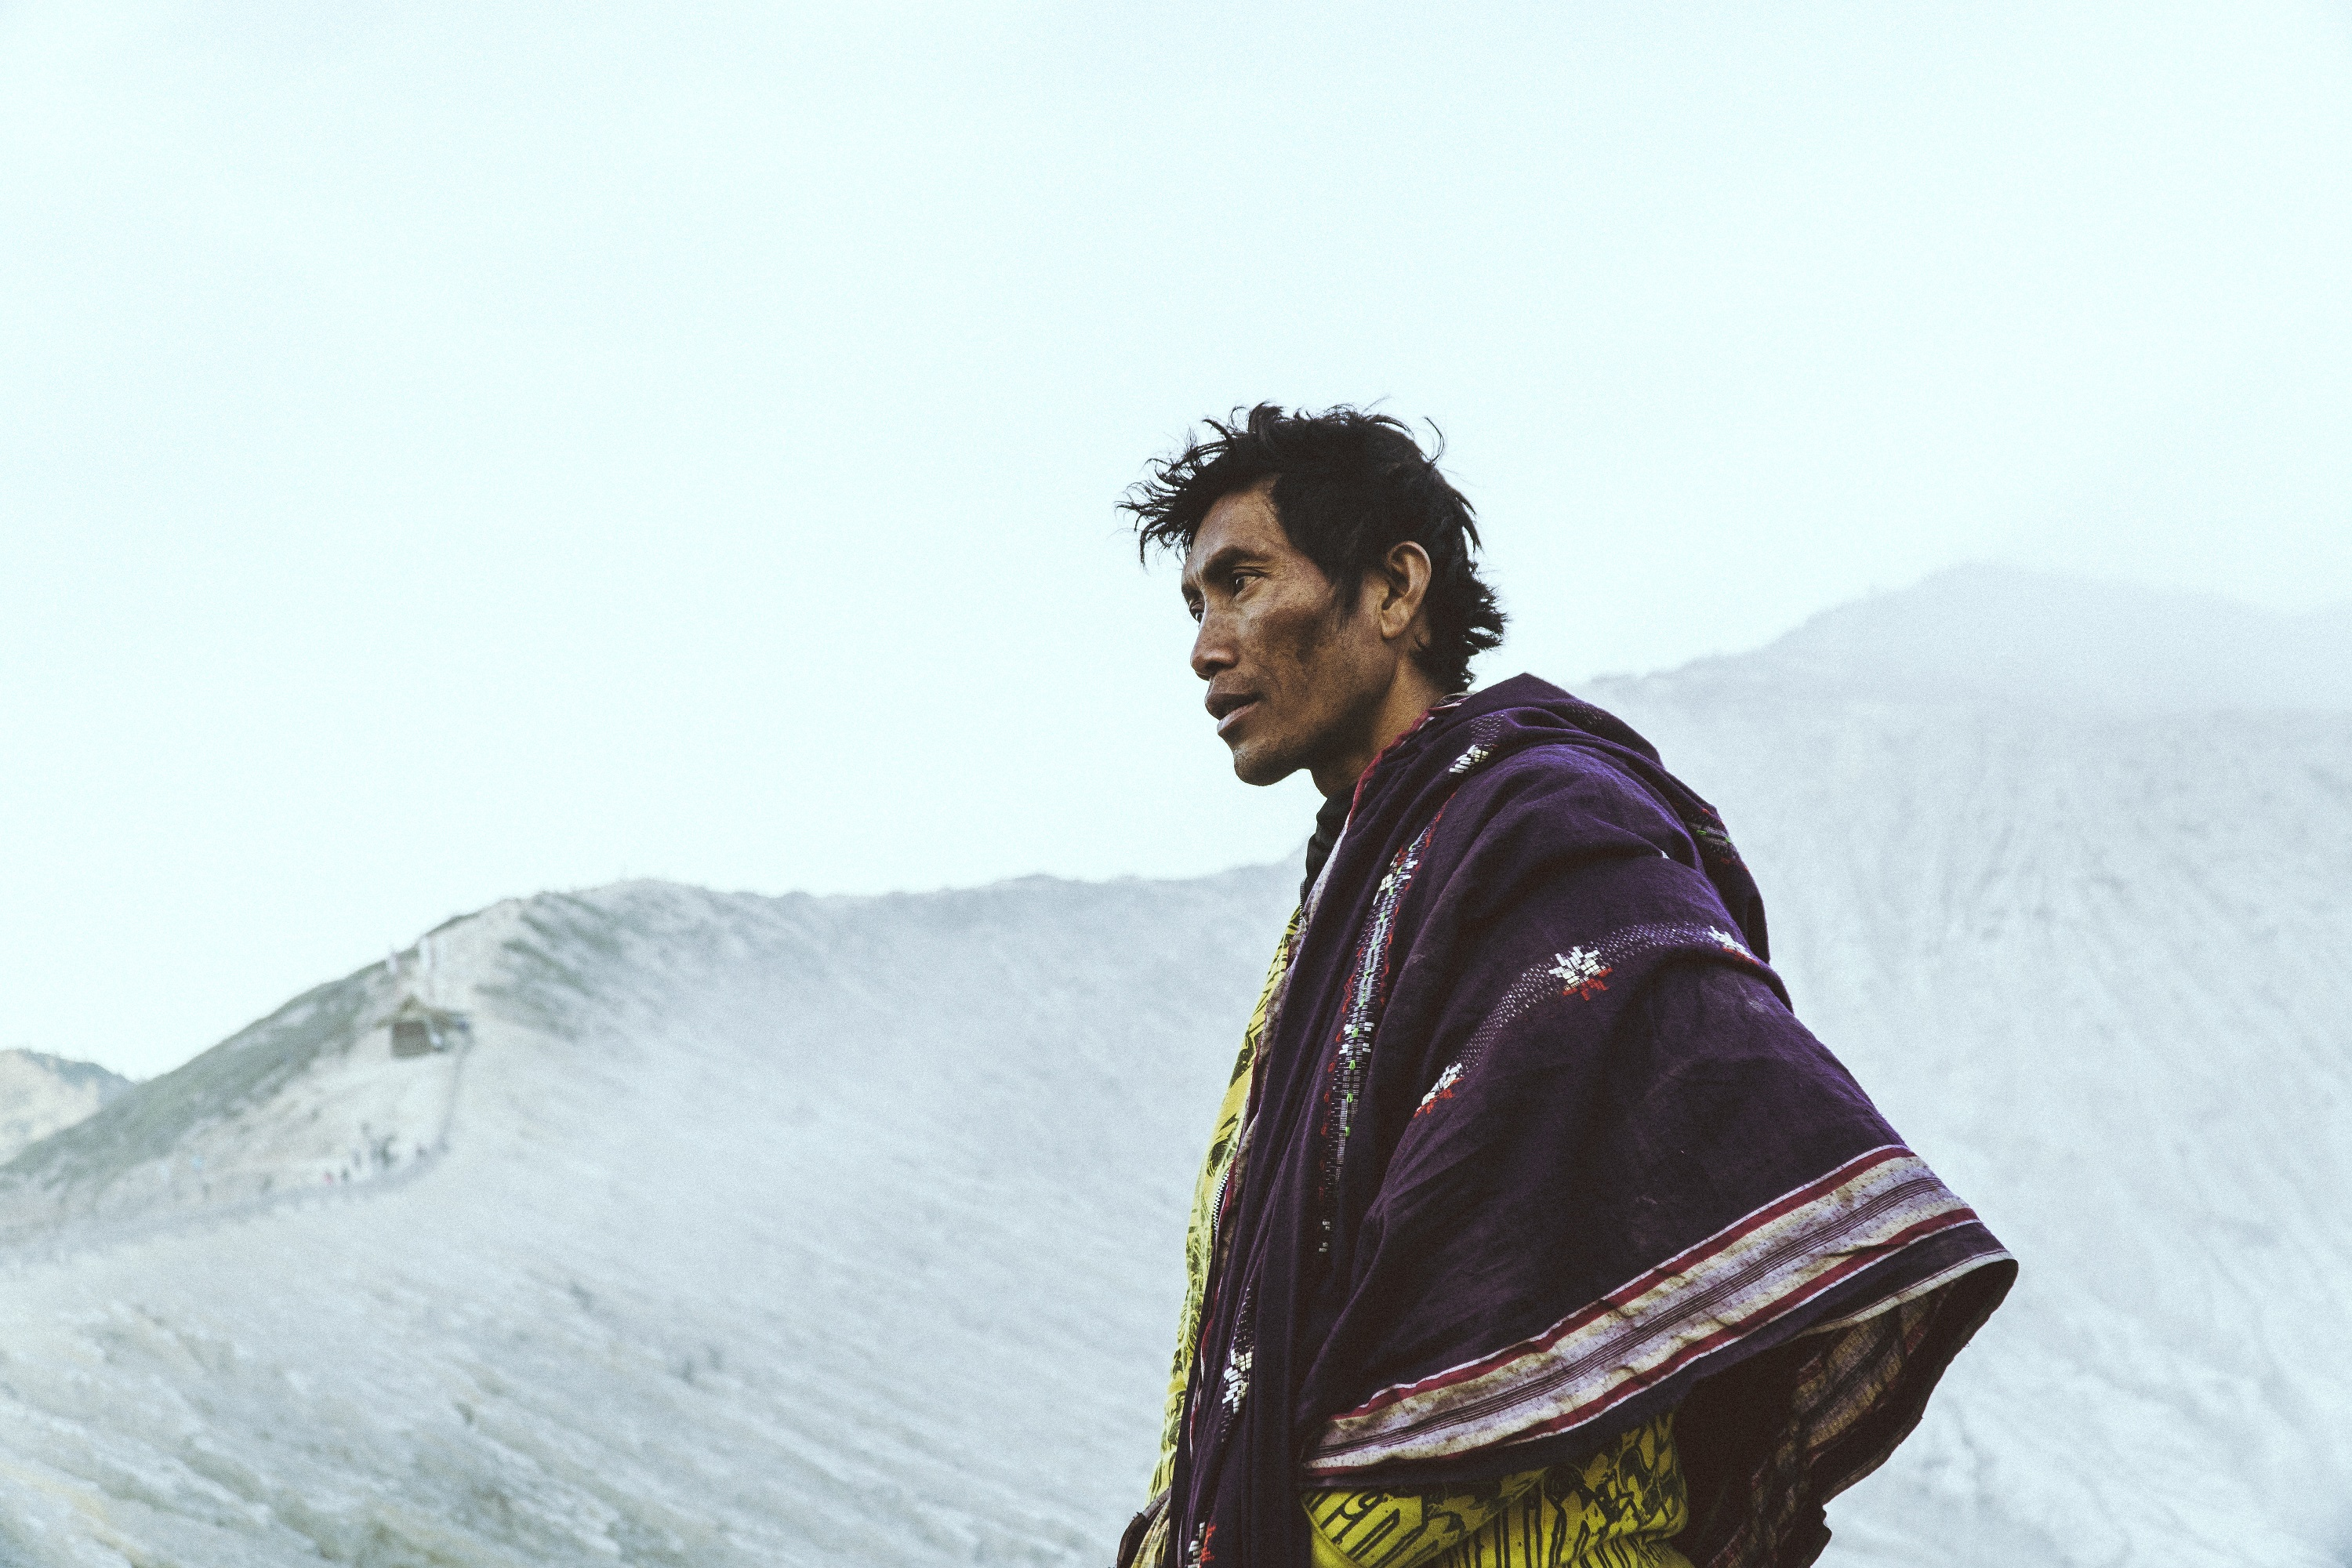 Native man walking in the mountains